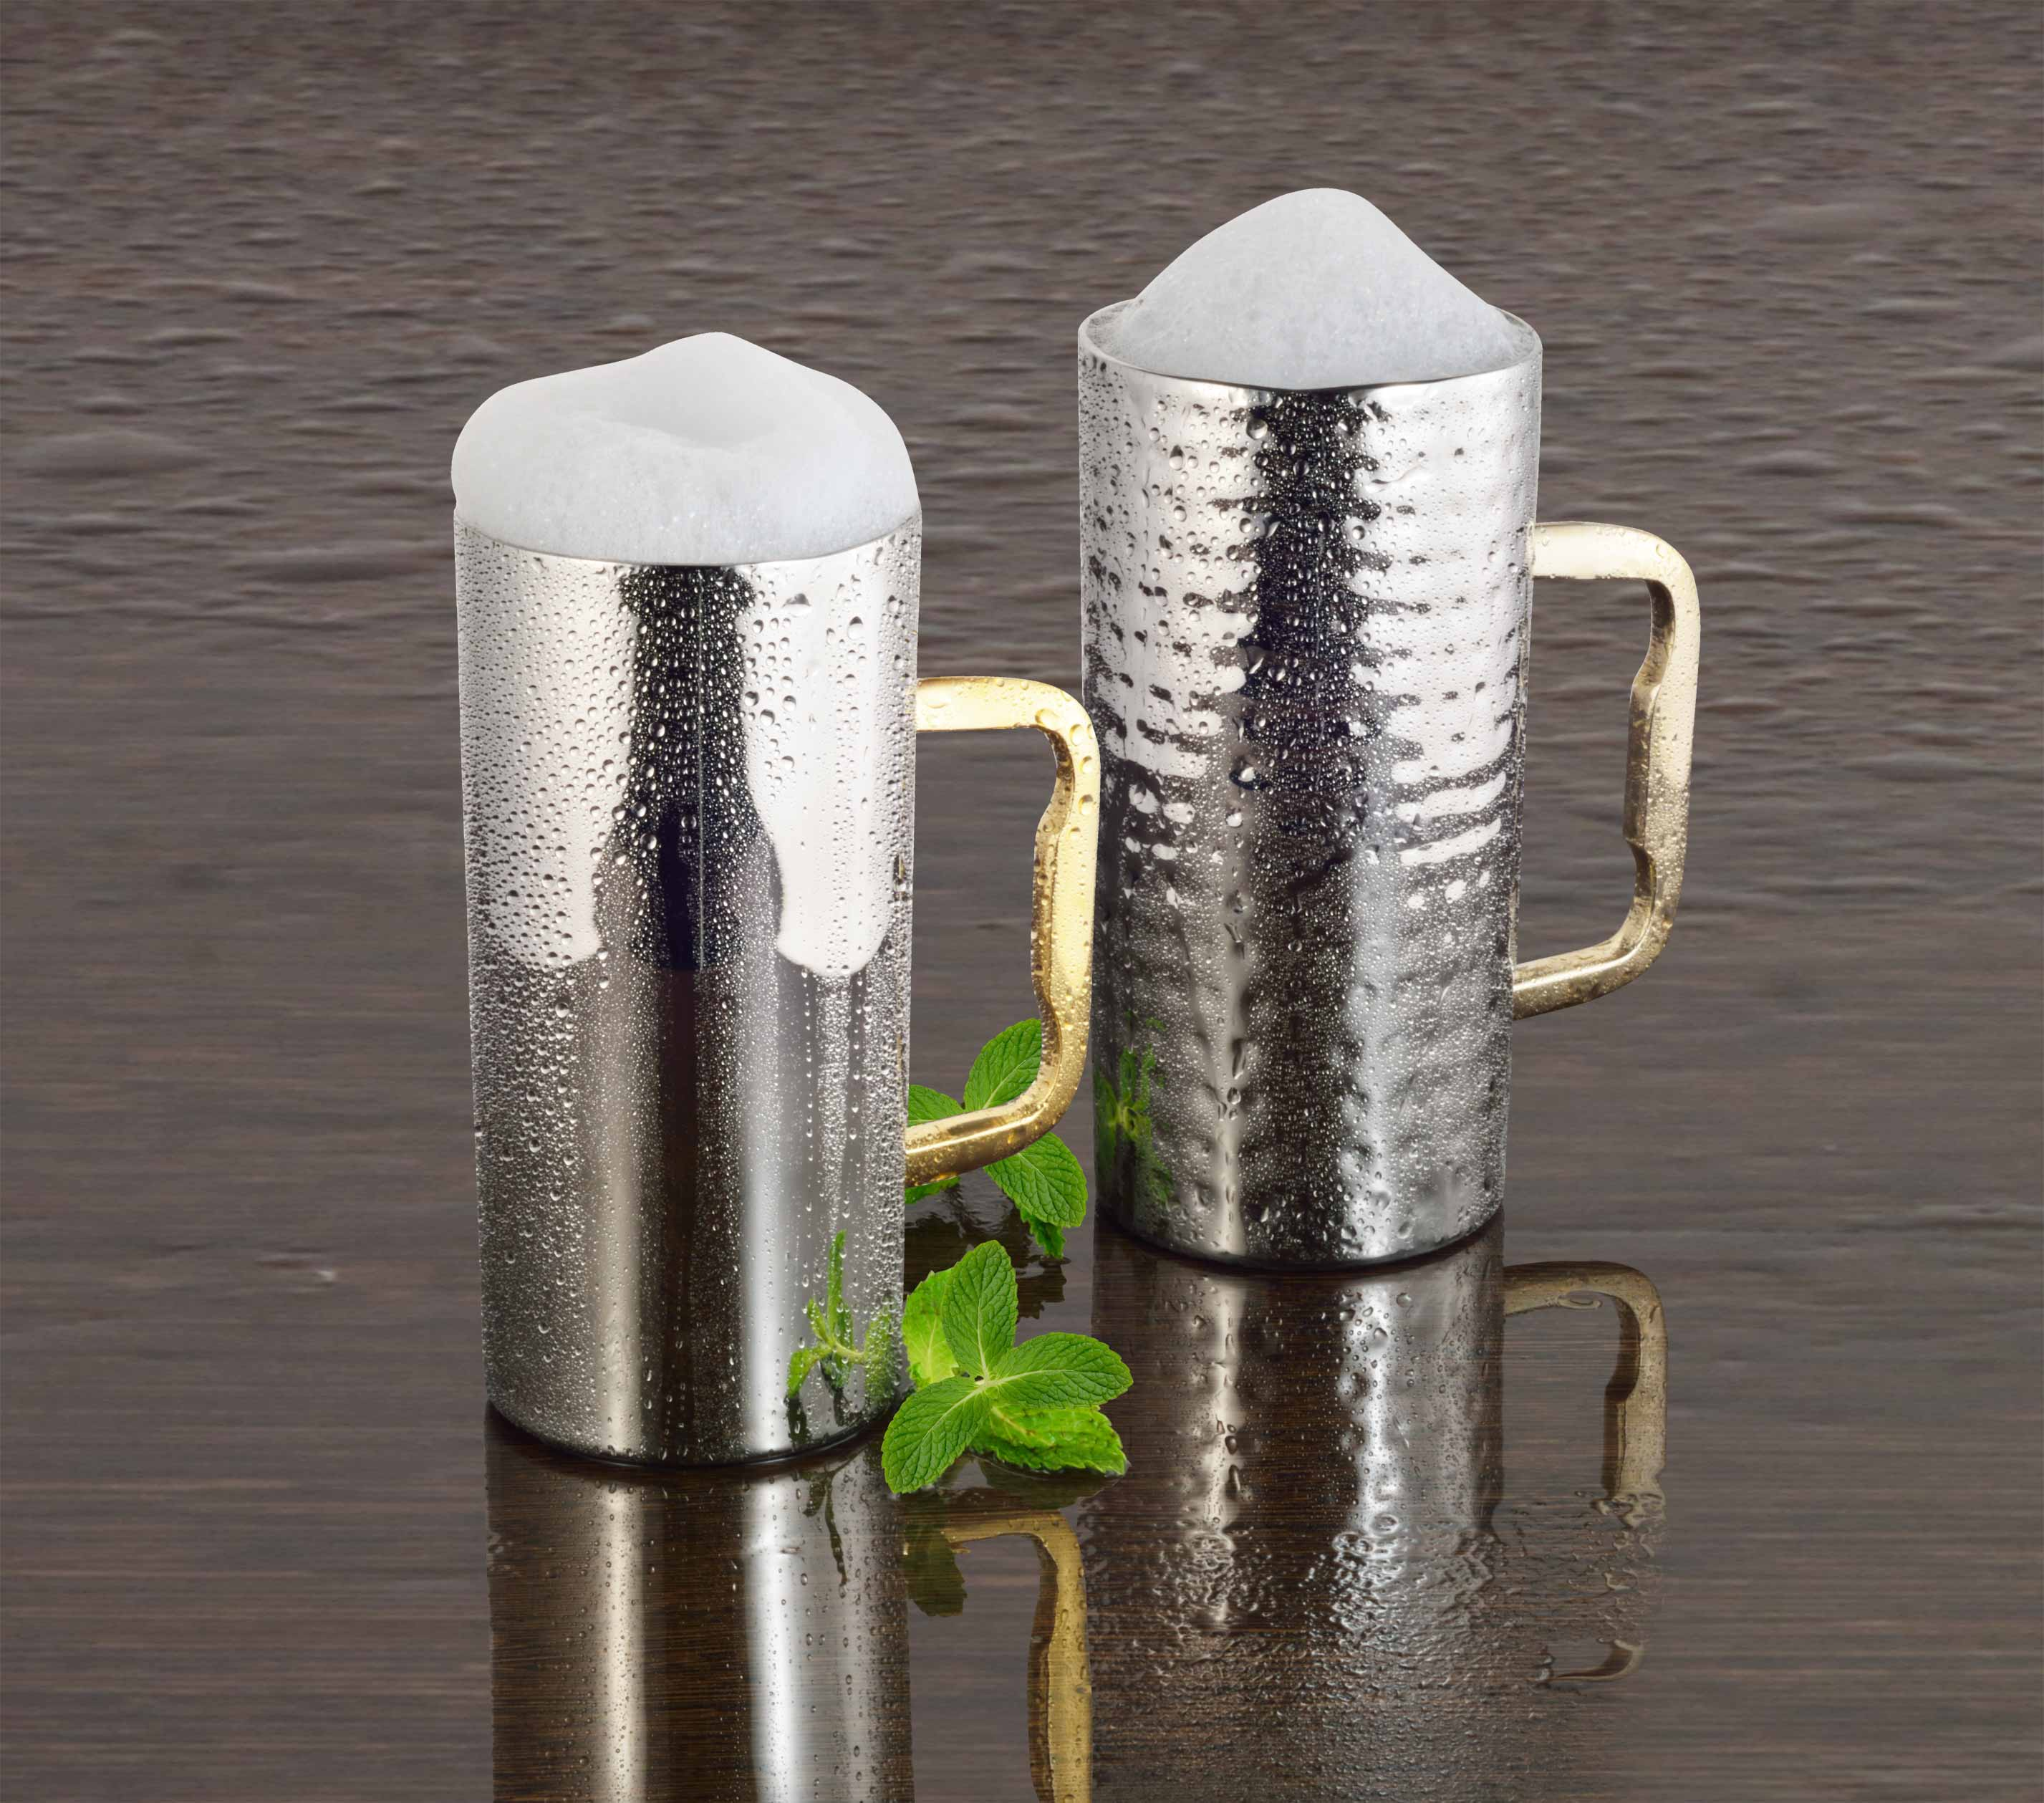 Beer mug with brass handle